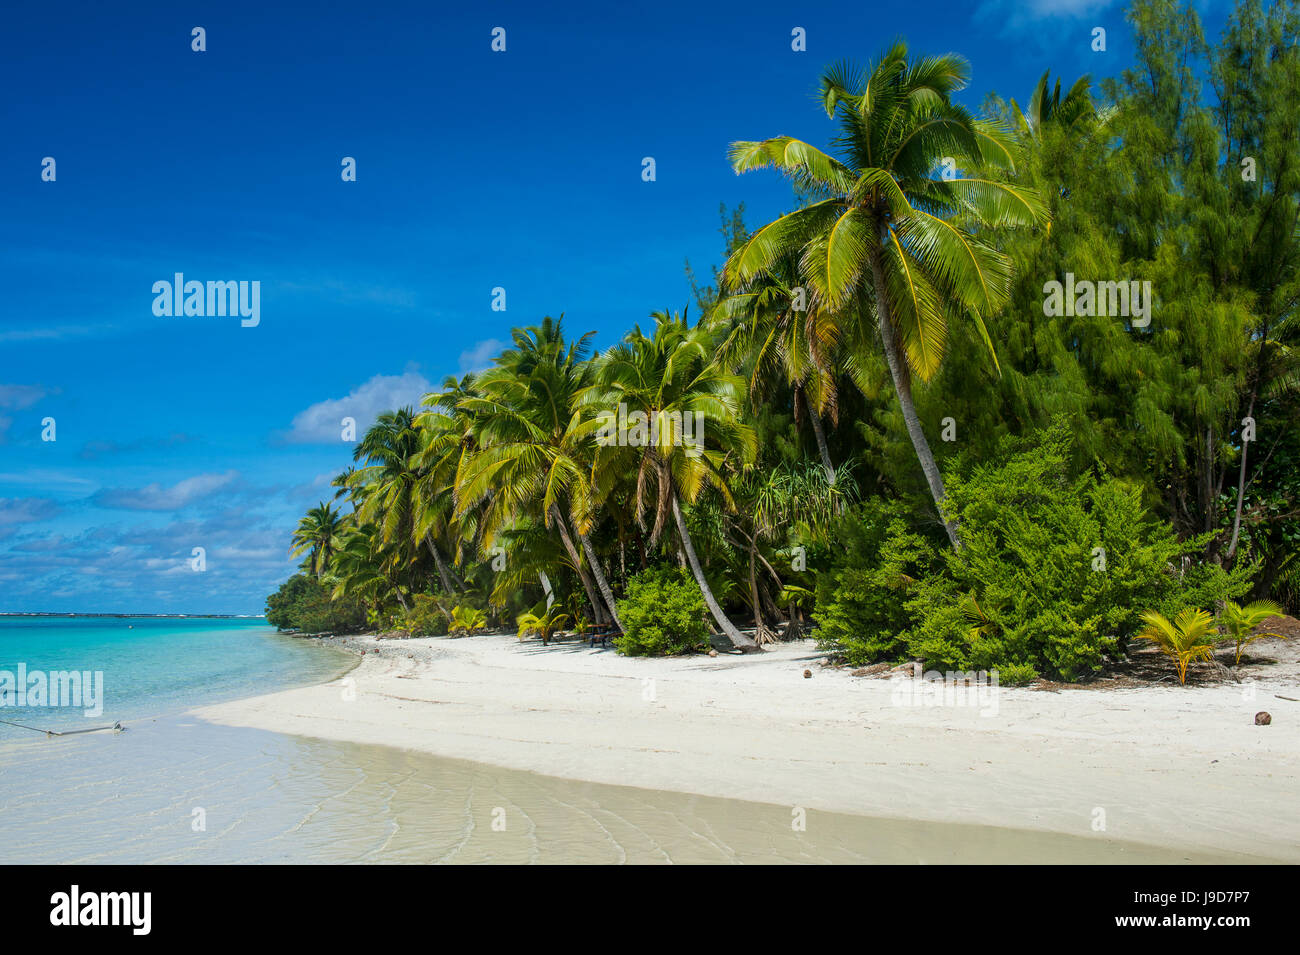 White sand bank in the turquoise waters of the Aitutaki lagoon, Rarotonga and the Cook Islands, South Pacific, Pacific - Stock Image